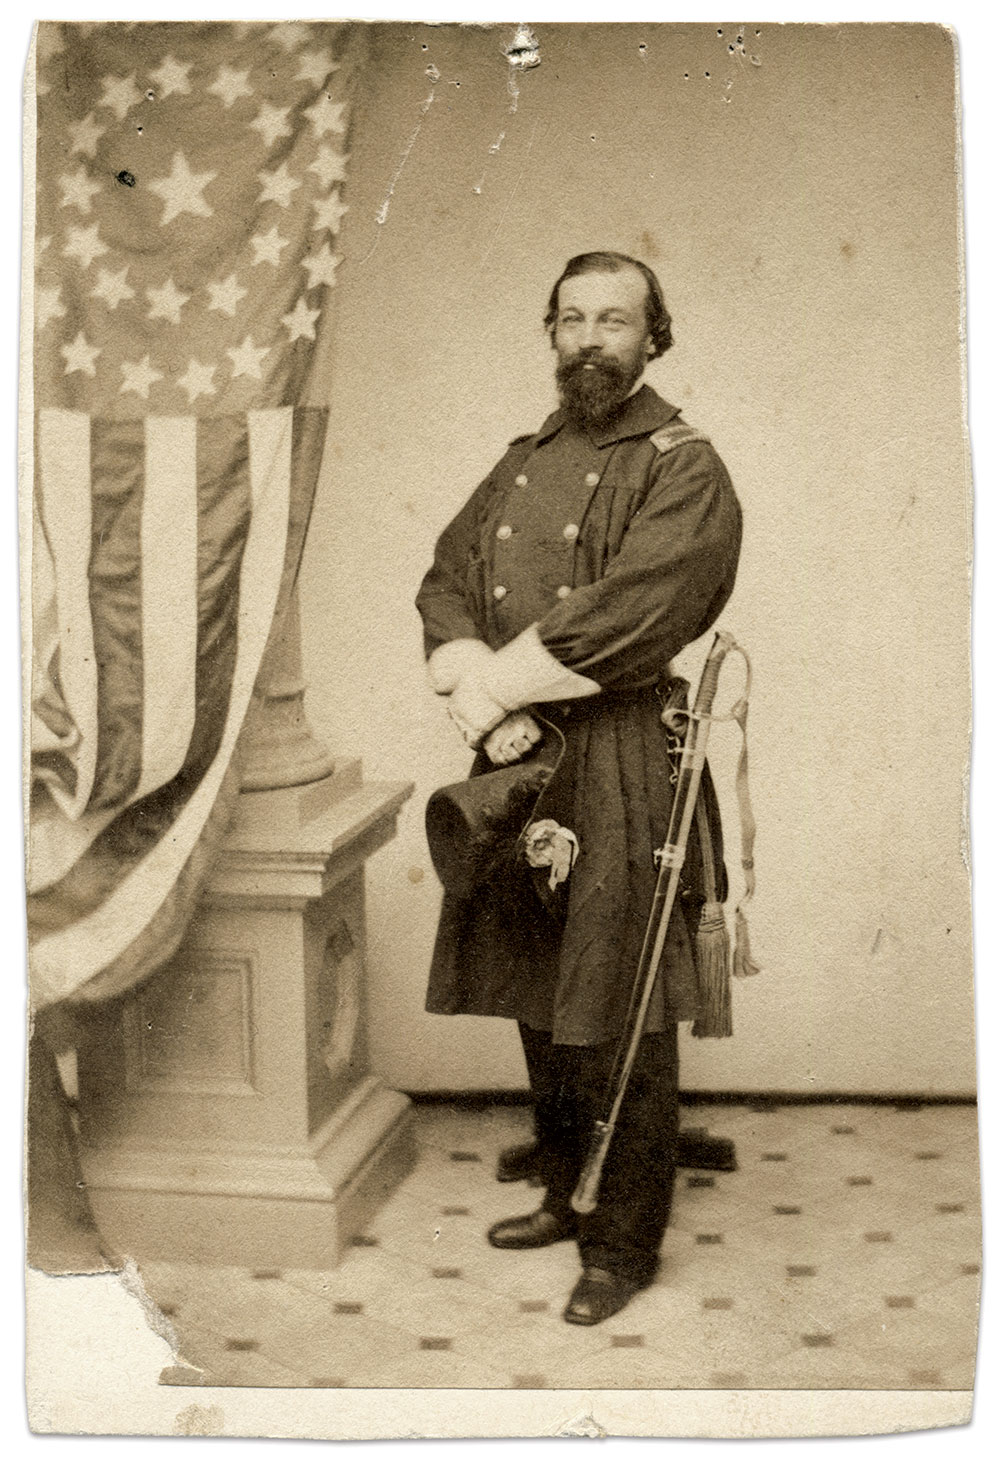 Carte de visite attributed to Bundy & Rowell of Providence, R.I. Rick Carlile Collection.